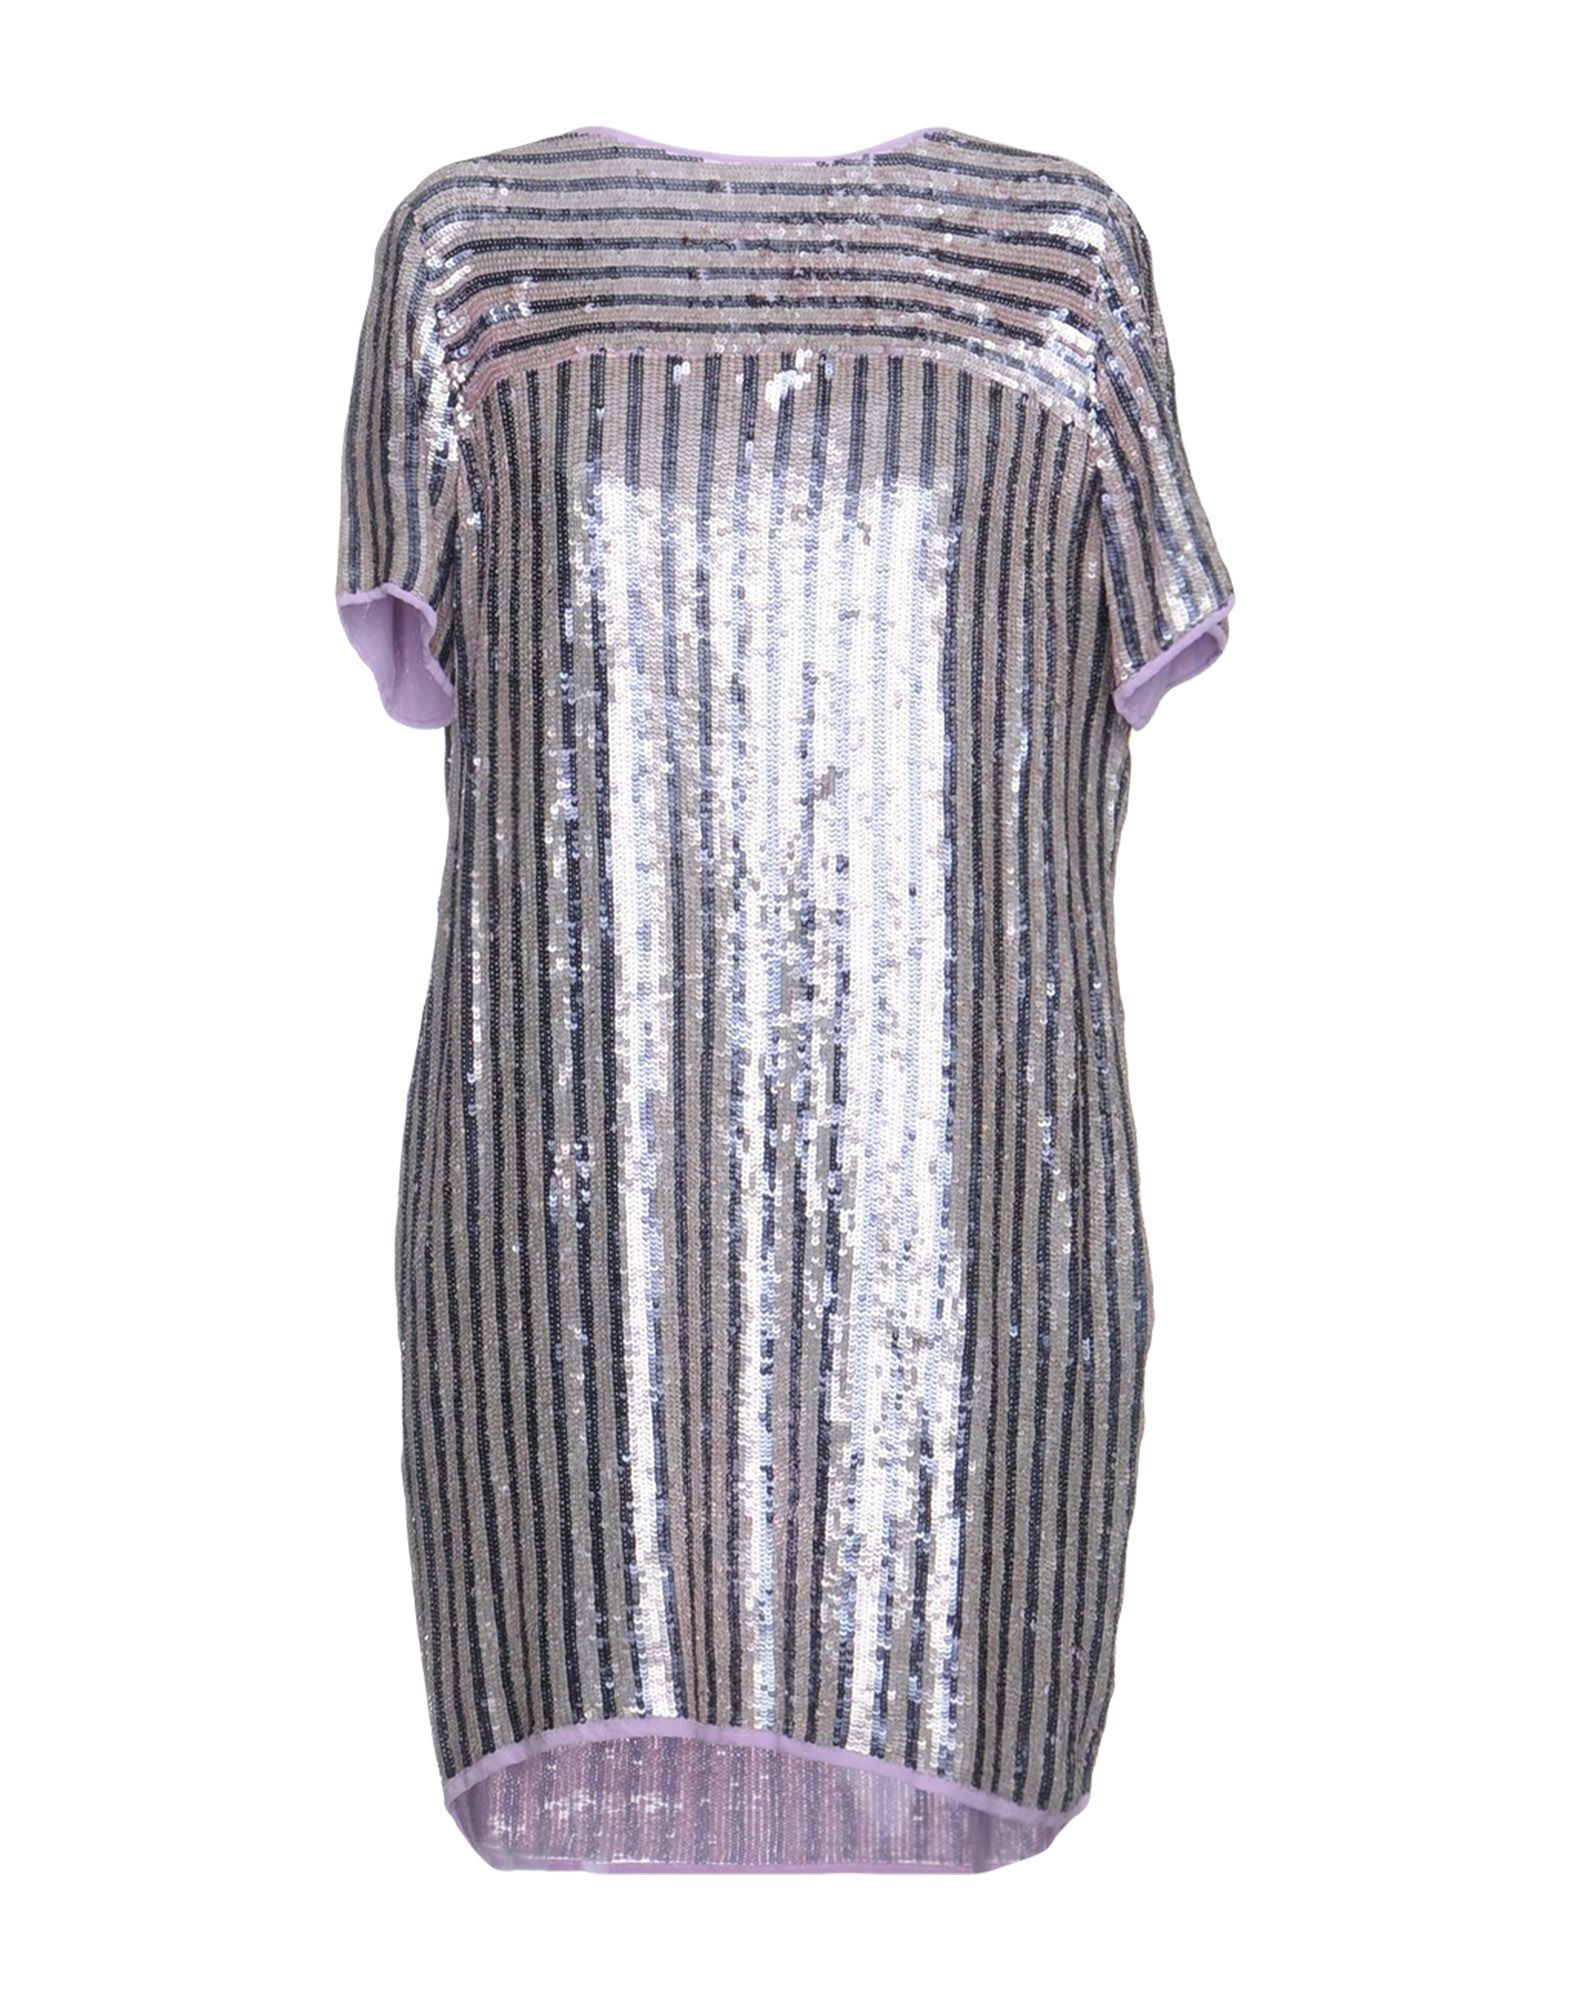 LIVIANA CONTI Short Dress in Light Purple